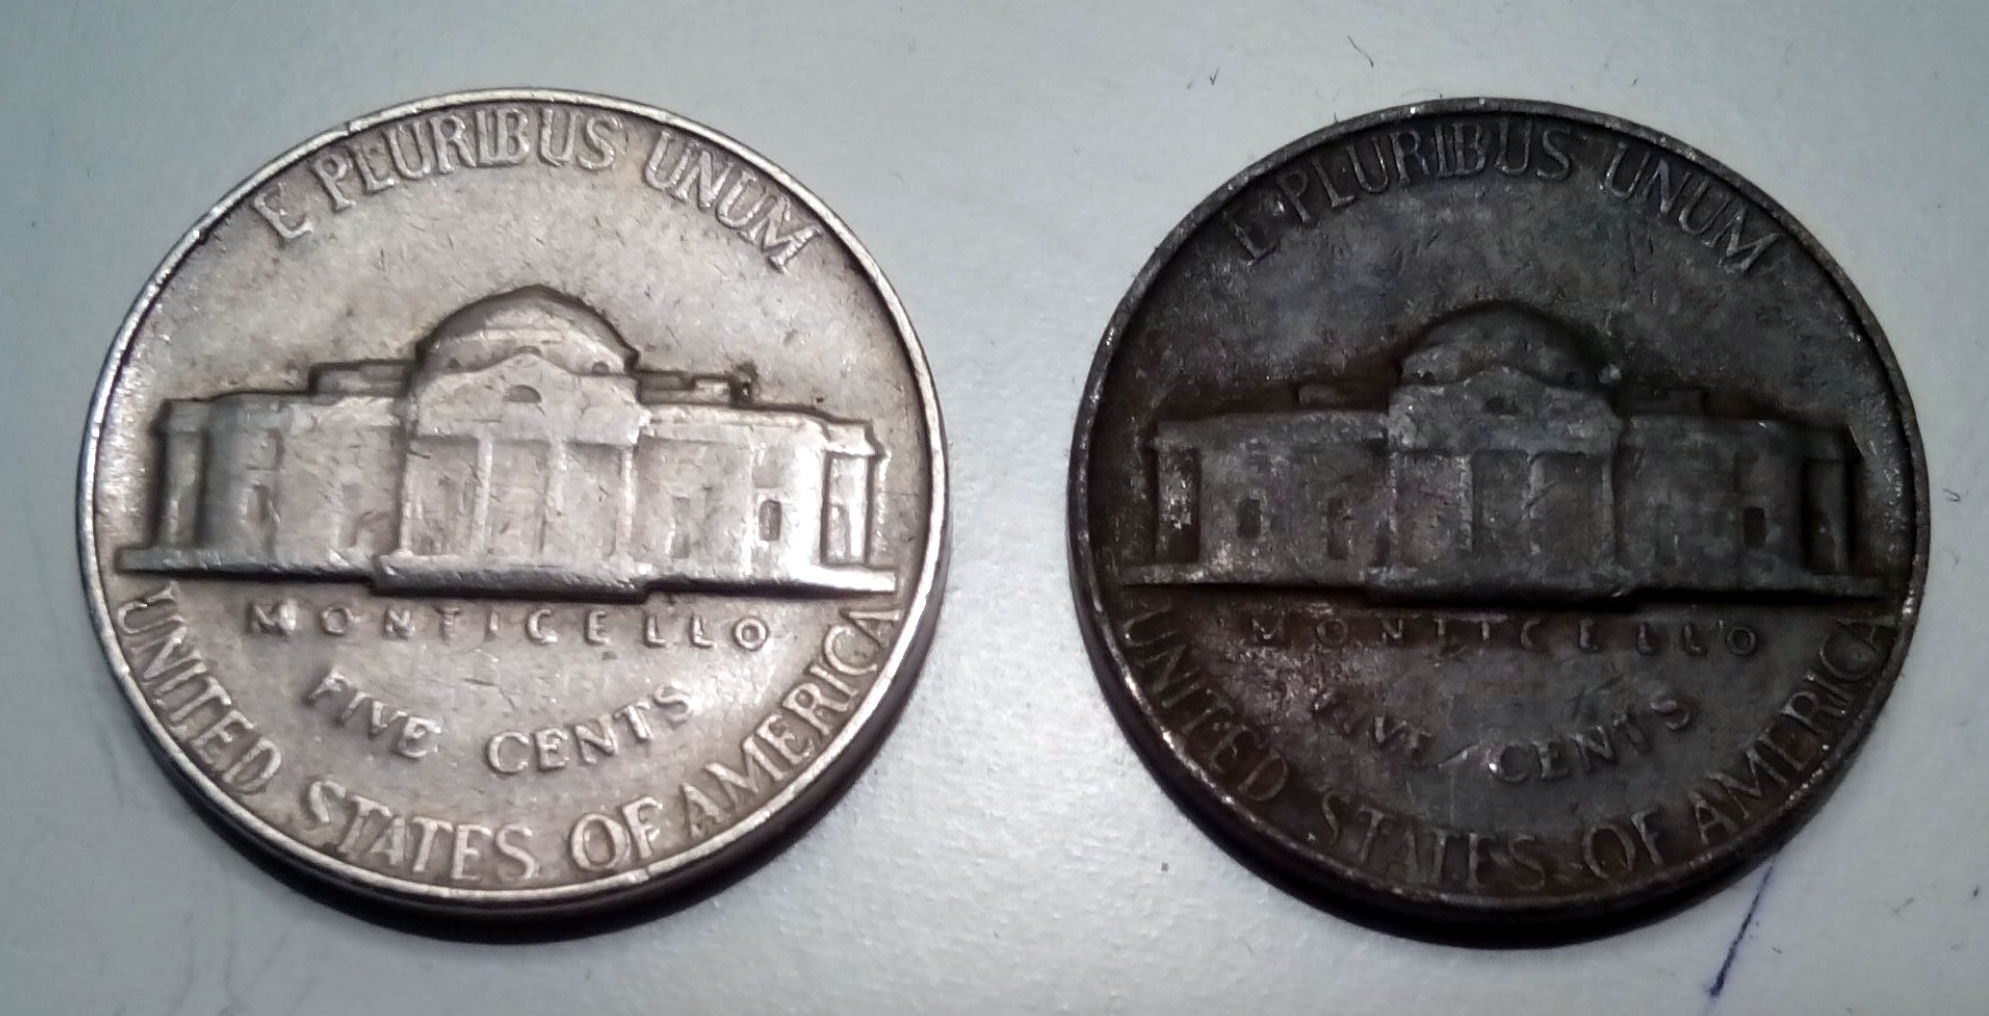 1964 Black Nickel - possible causes? - Coin Community Forum